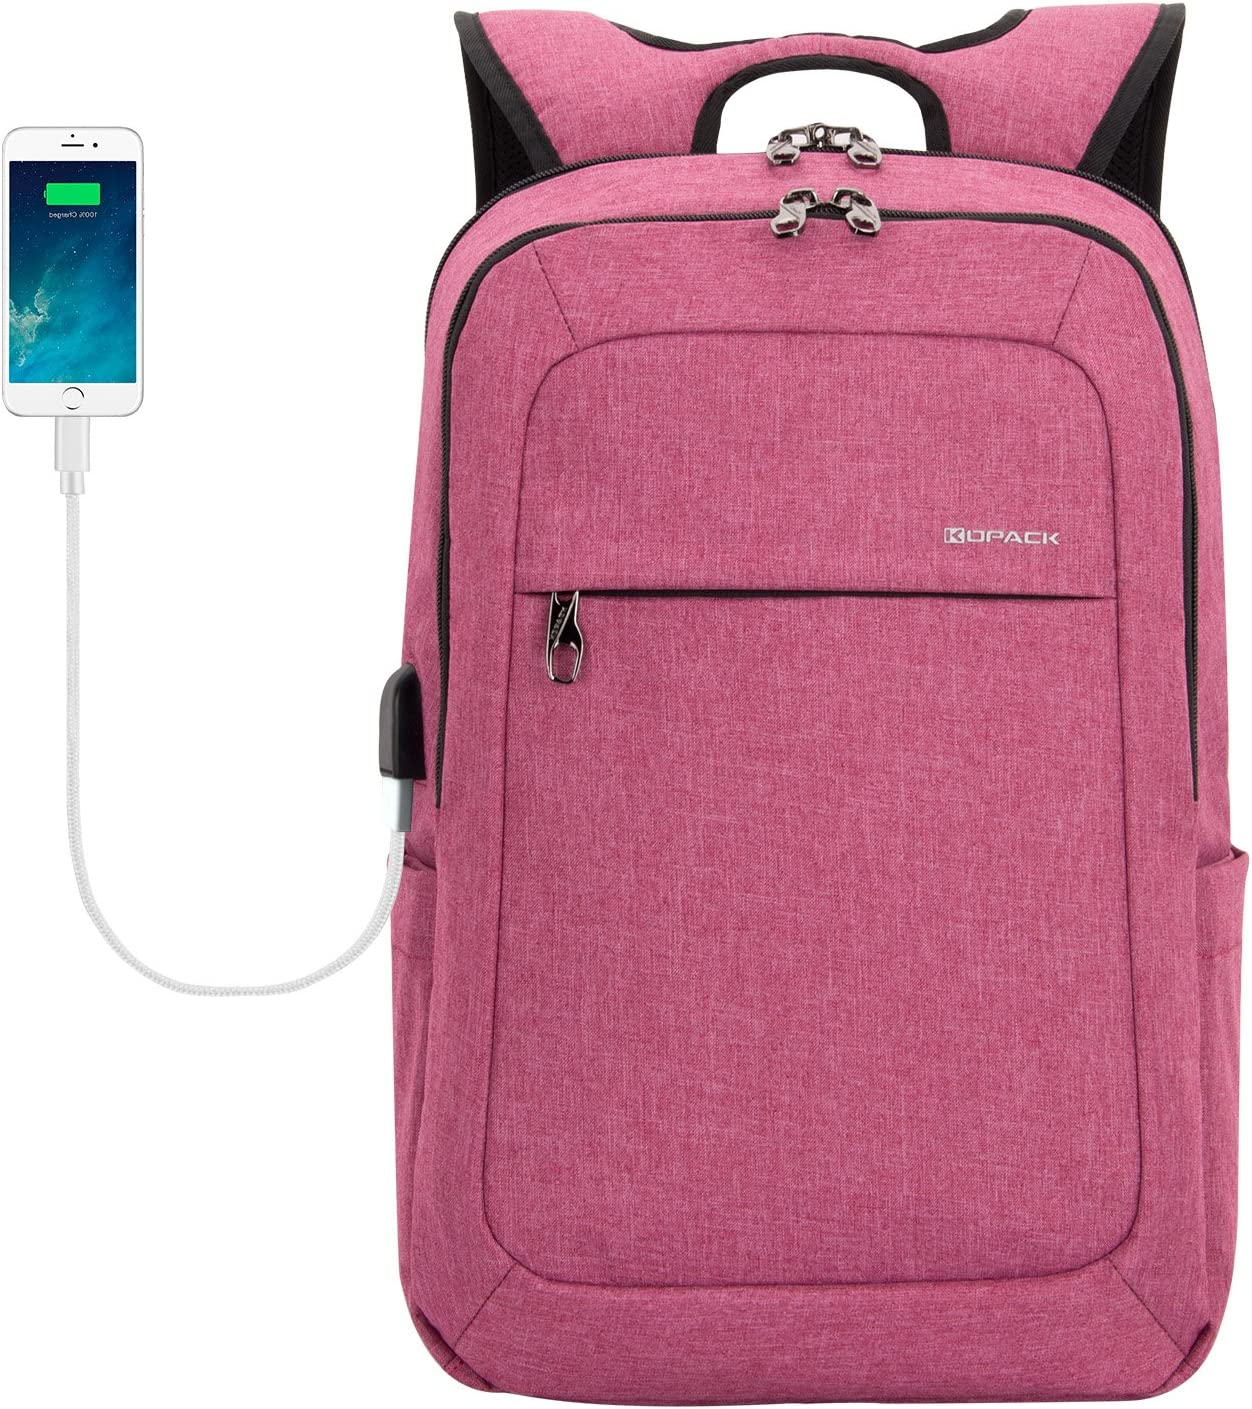 St Patricks Day Lucky Shamrock College Laptop Backpack Bag with USB Charging Port Computer Business Backpacks for Women Men School Student Casual Hiking Travel Daypack